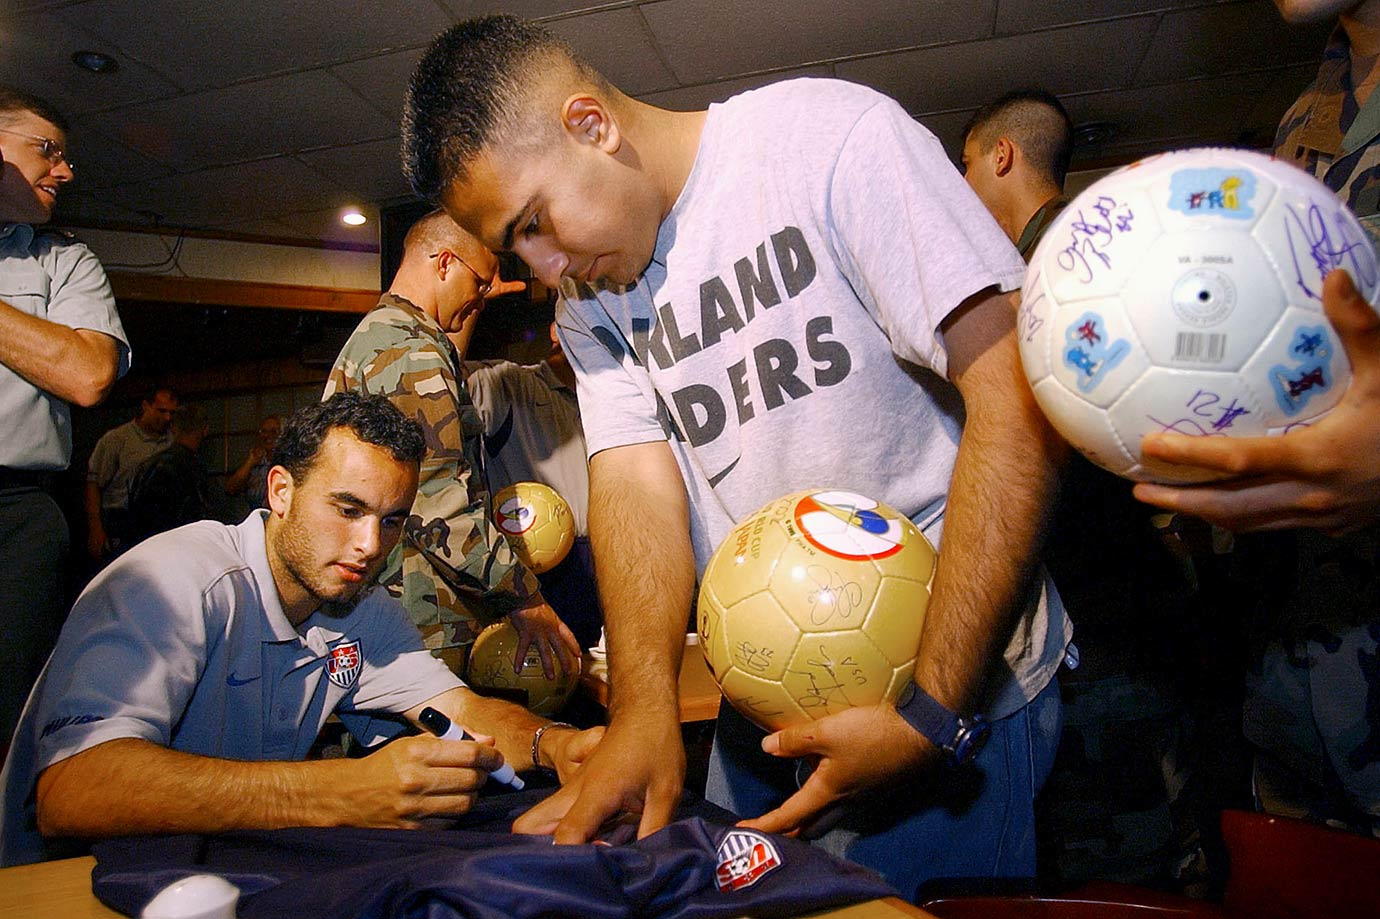 Landon Donovan autographs a USA team jersey for U.S. Army SPC 4 Jesus Medina of Houston during the team's visit to the demilitarized zone in Panmunjom, South Korea.